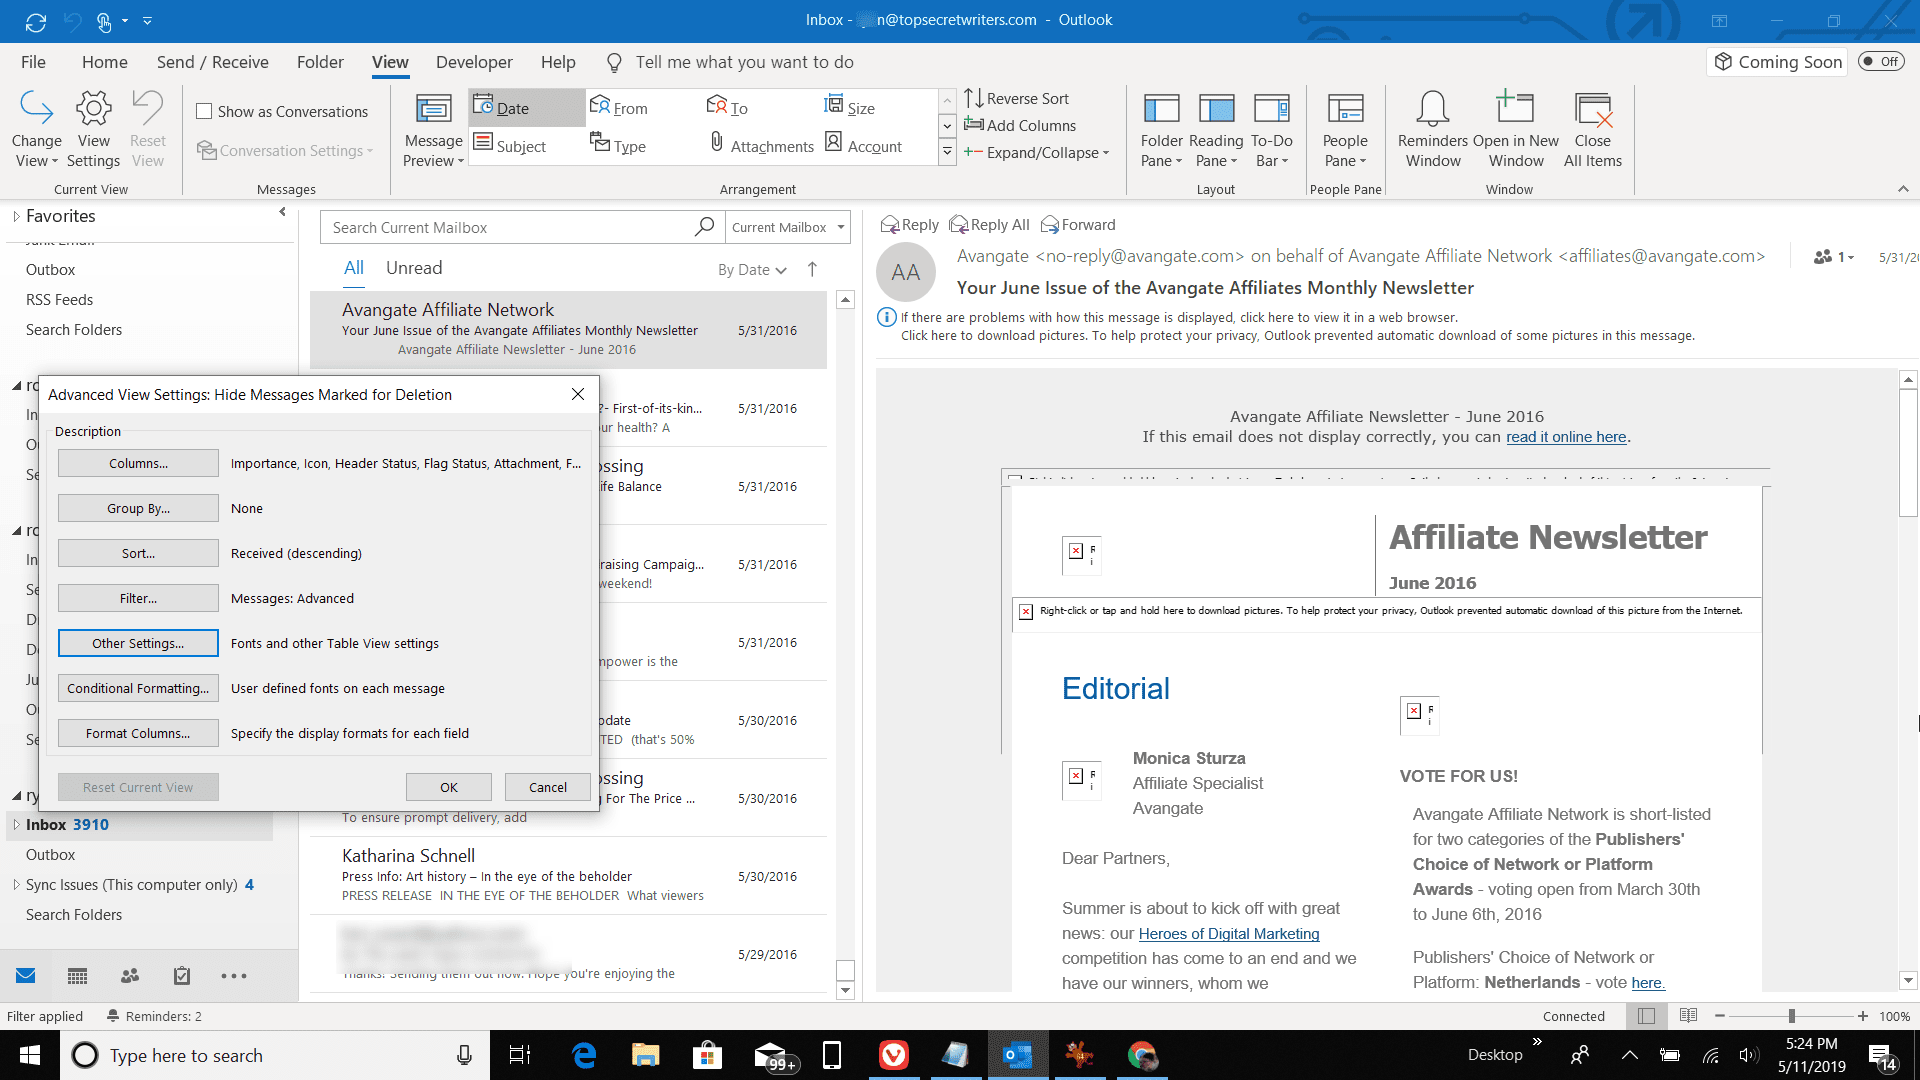 Screenshot of Advanced View Settings in Outlook